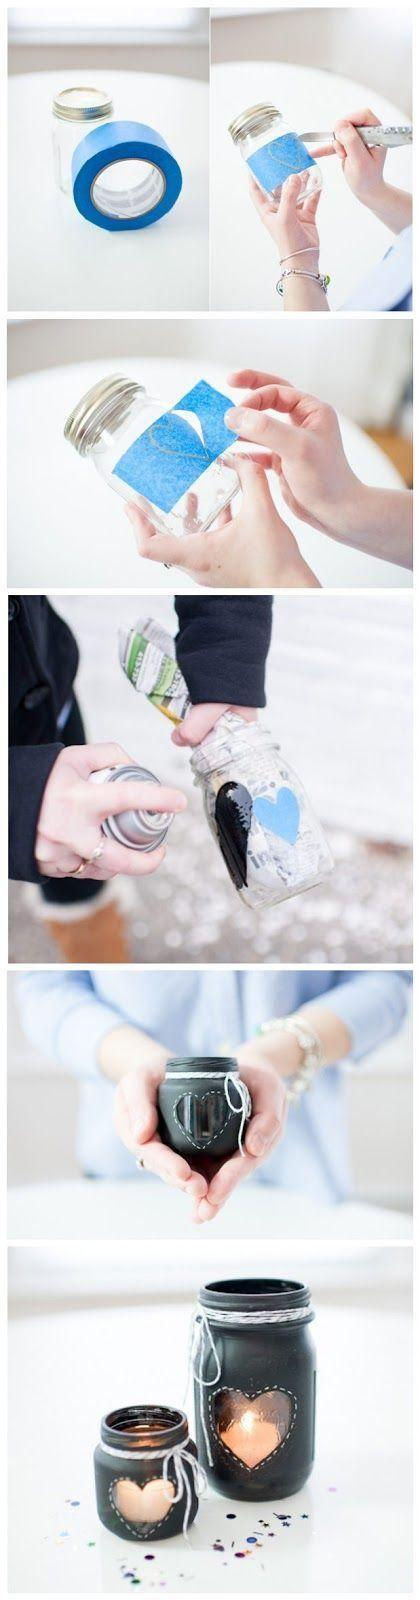 DIY mason jar - a visual guide